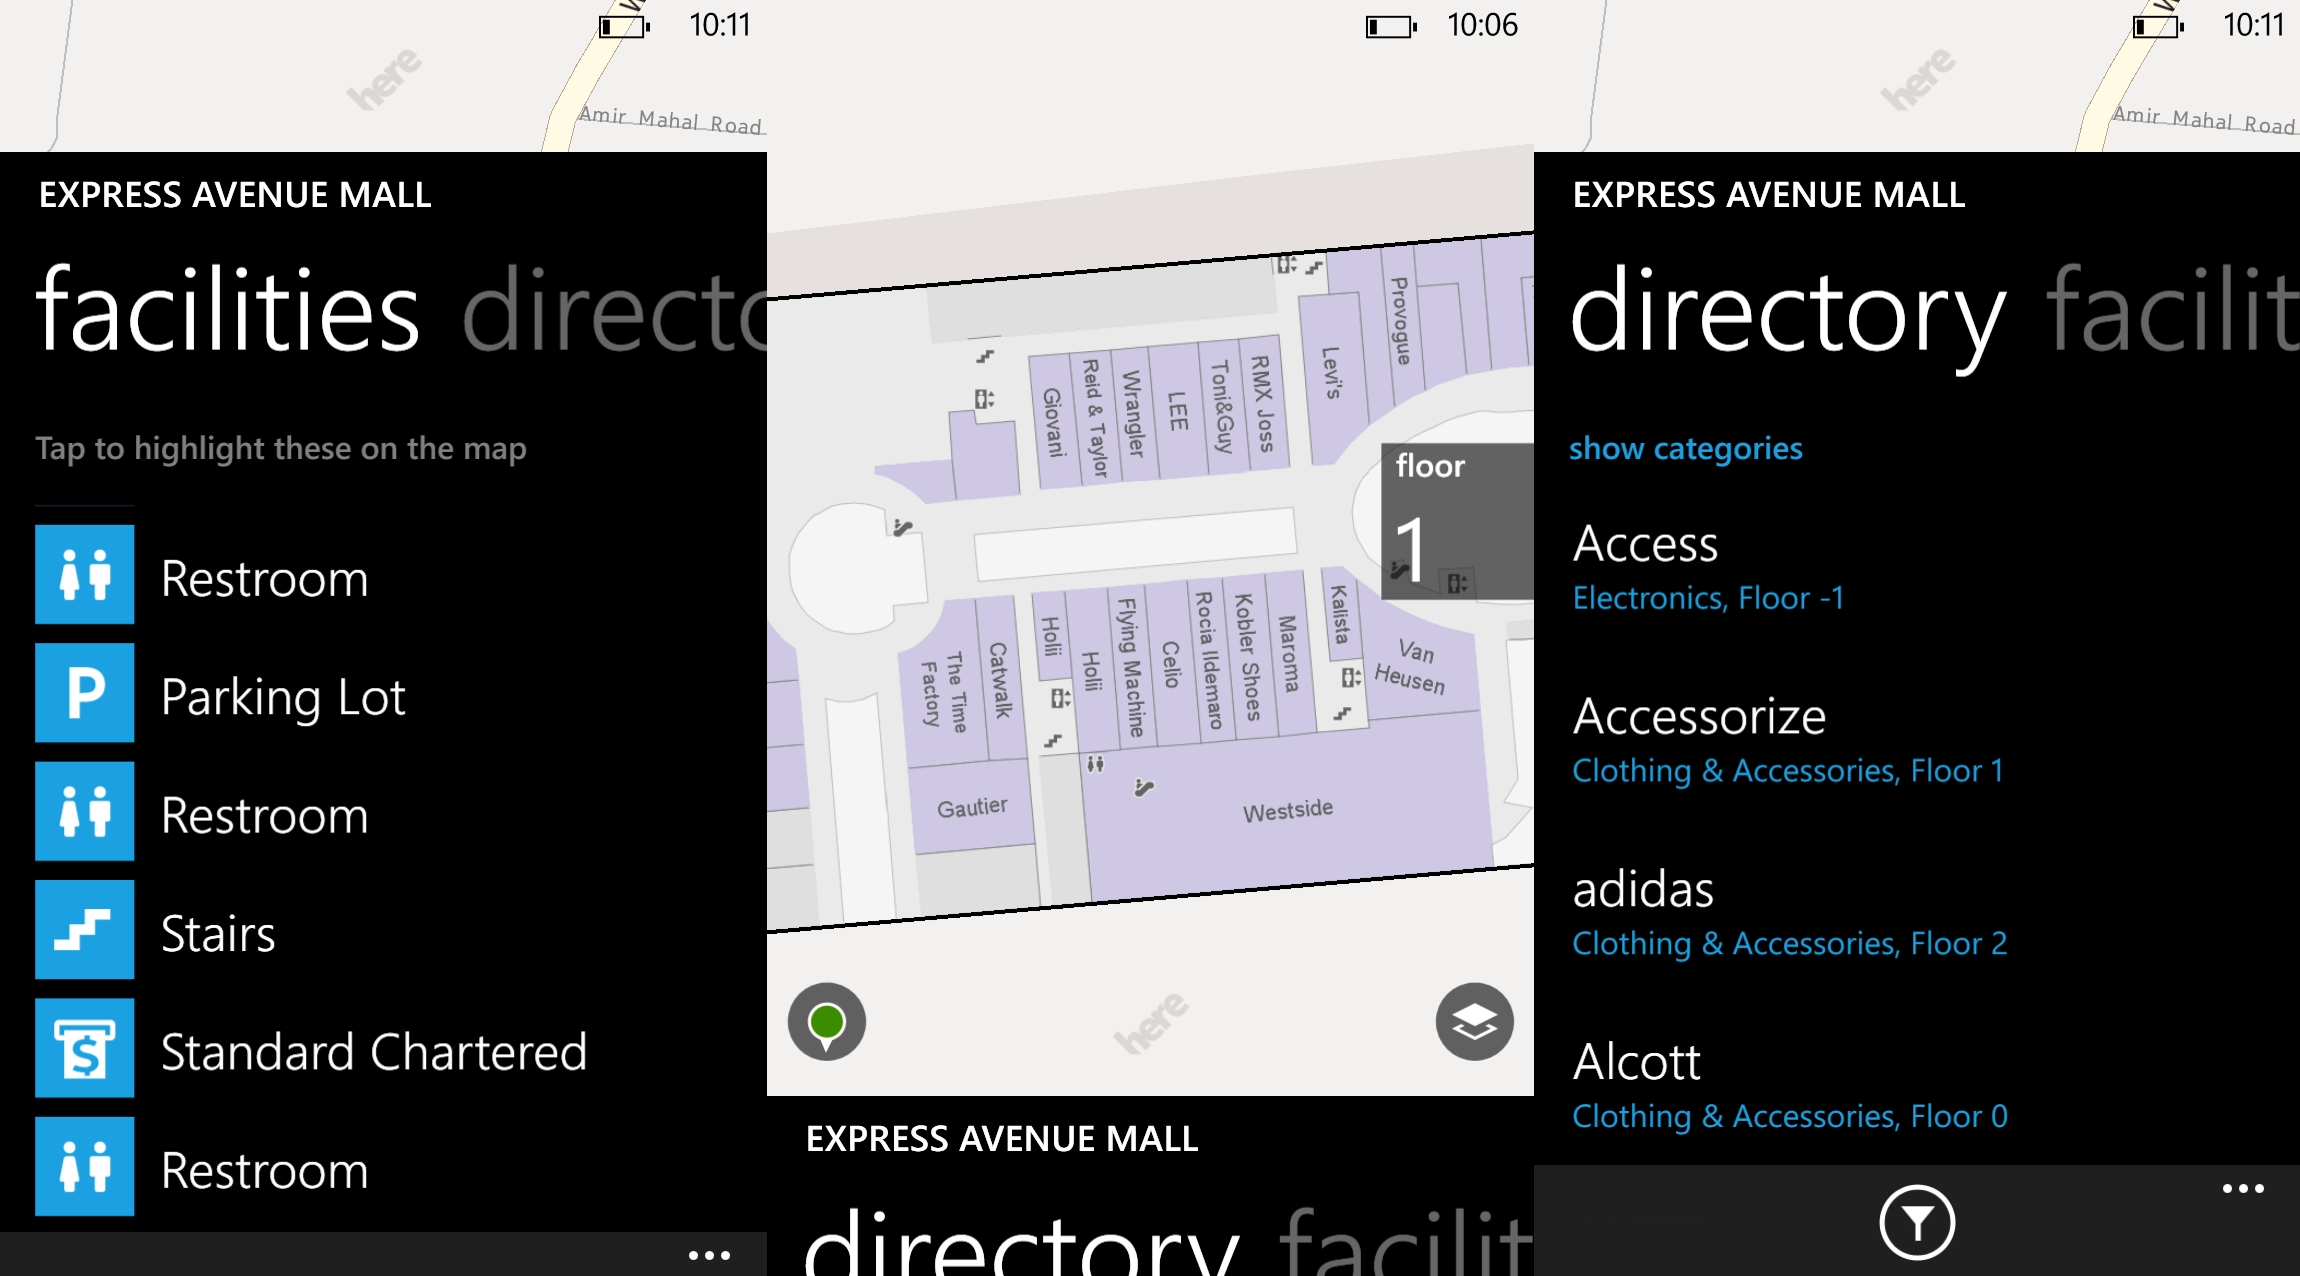 Nokia Maps HERE Updating internal mapping to show the shopping malls in India   Nokia has just updated their support HERE Destination Maps Maps, which has been fitted to show the malls in India. Nokia has always been to expand the coverage of Destination Maps and July 2012, Nokia announced the 4605 scene, expanding its shopping centers, department stores, airports and transit stations in 38 countries.